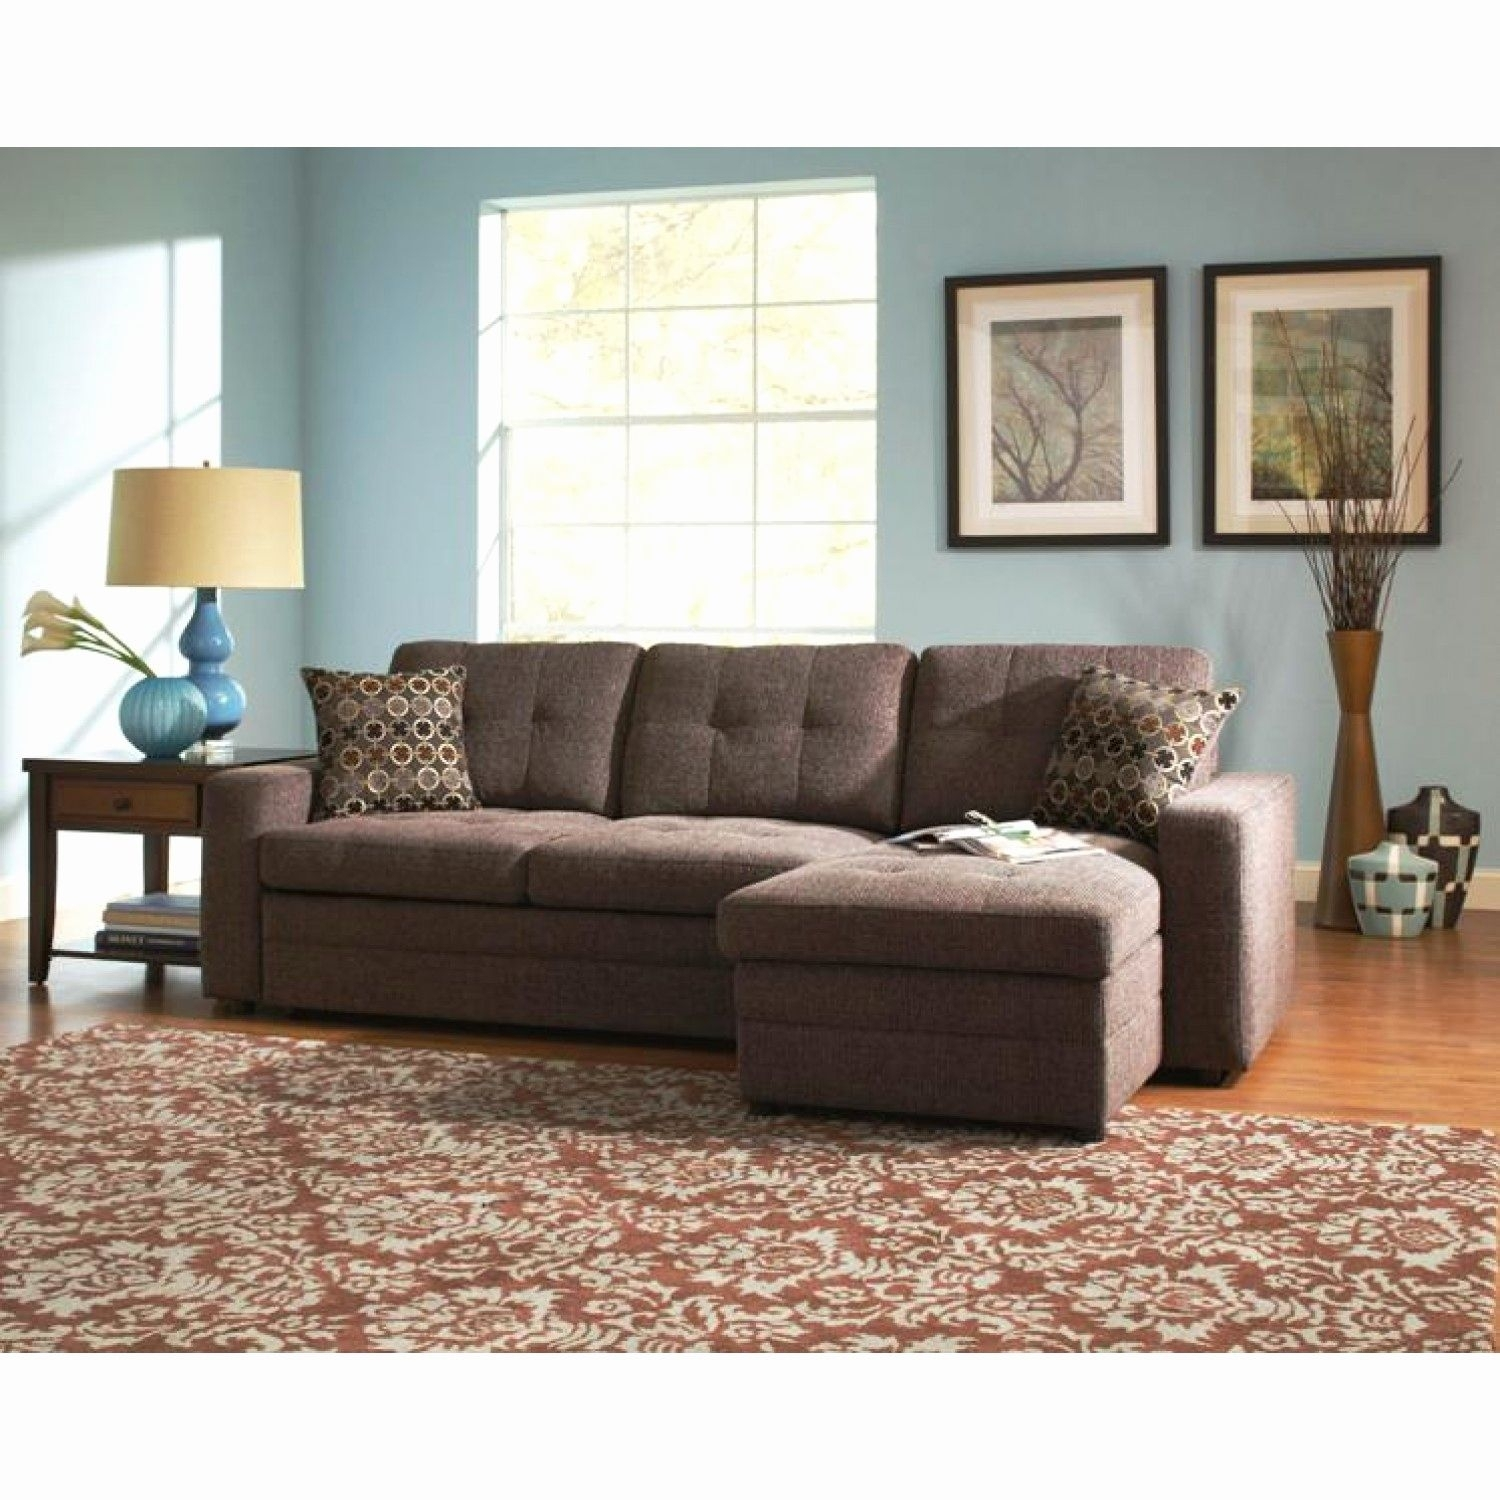 Best Of Sectional Sofa Sleepers Pictures Sectional Sofa Sleepers New For Norfolk Chocolate 6 Piece Sectionals With Laf Chaise (View 15 of 25)